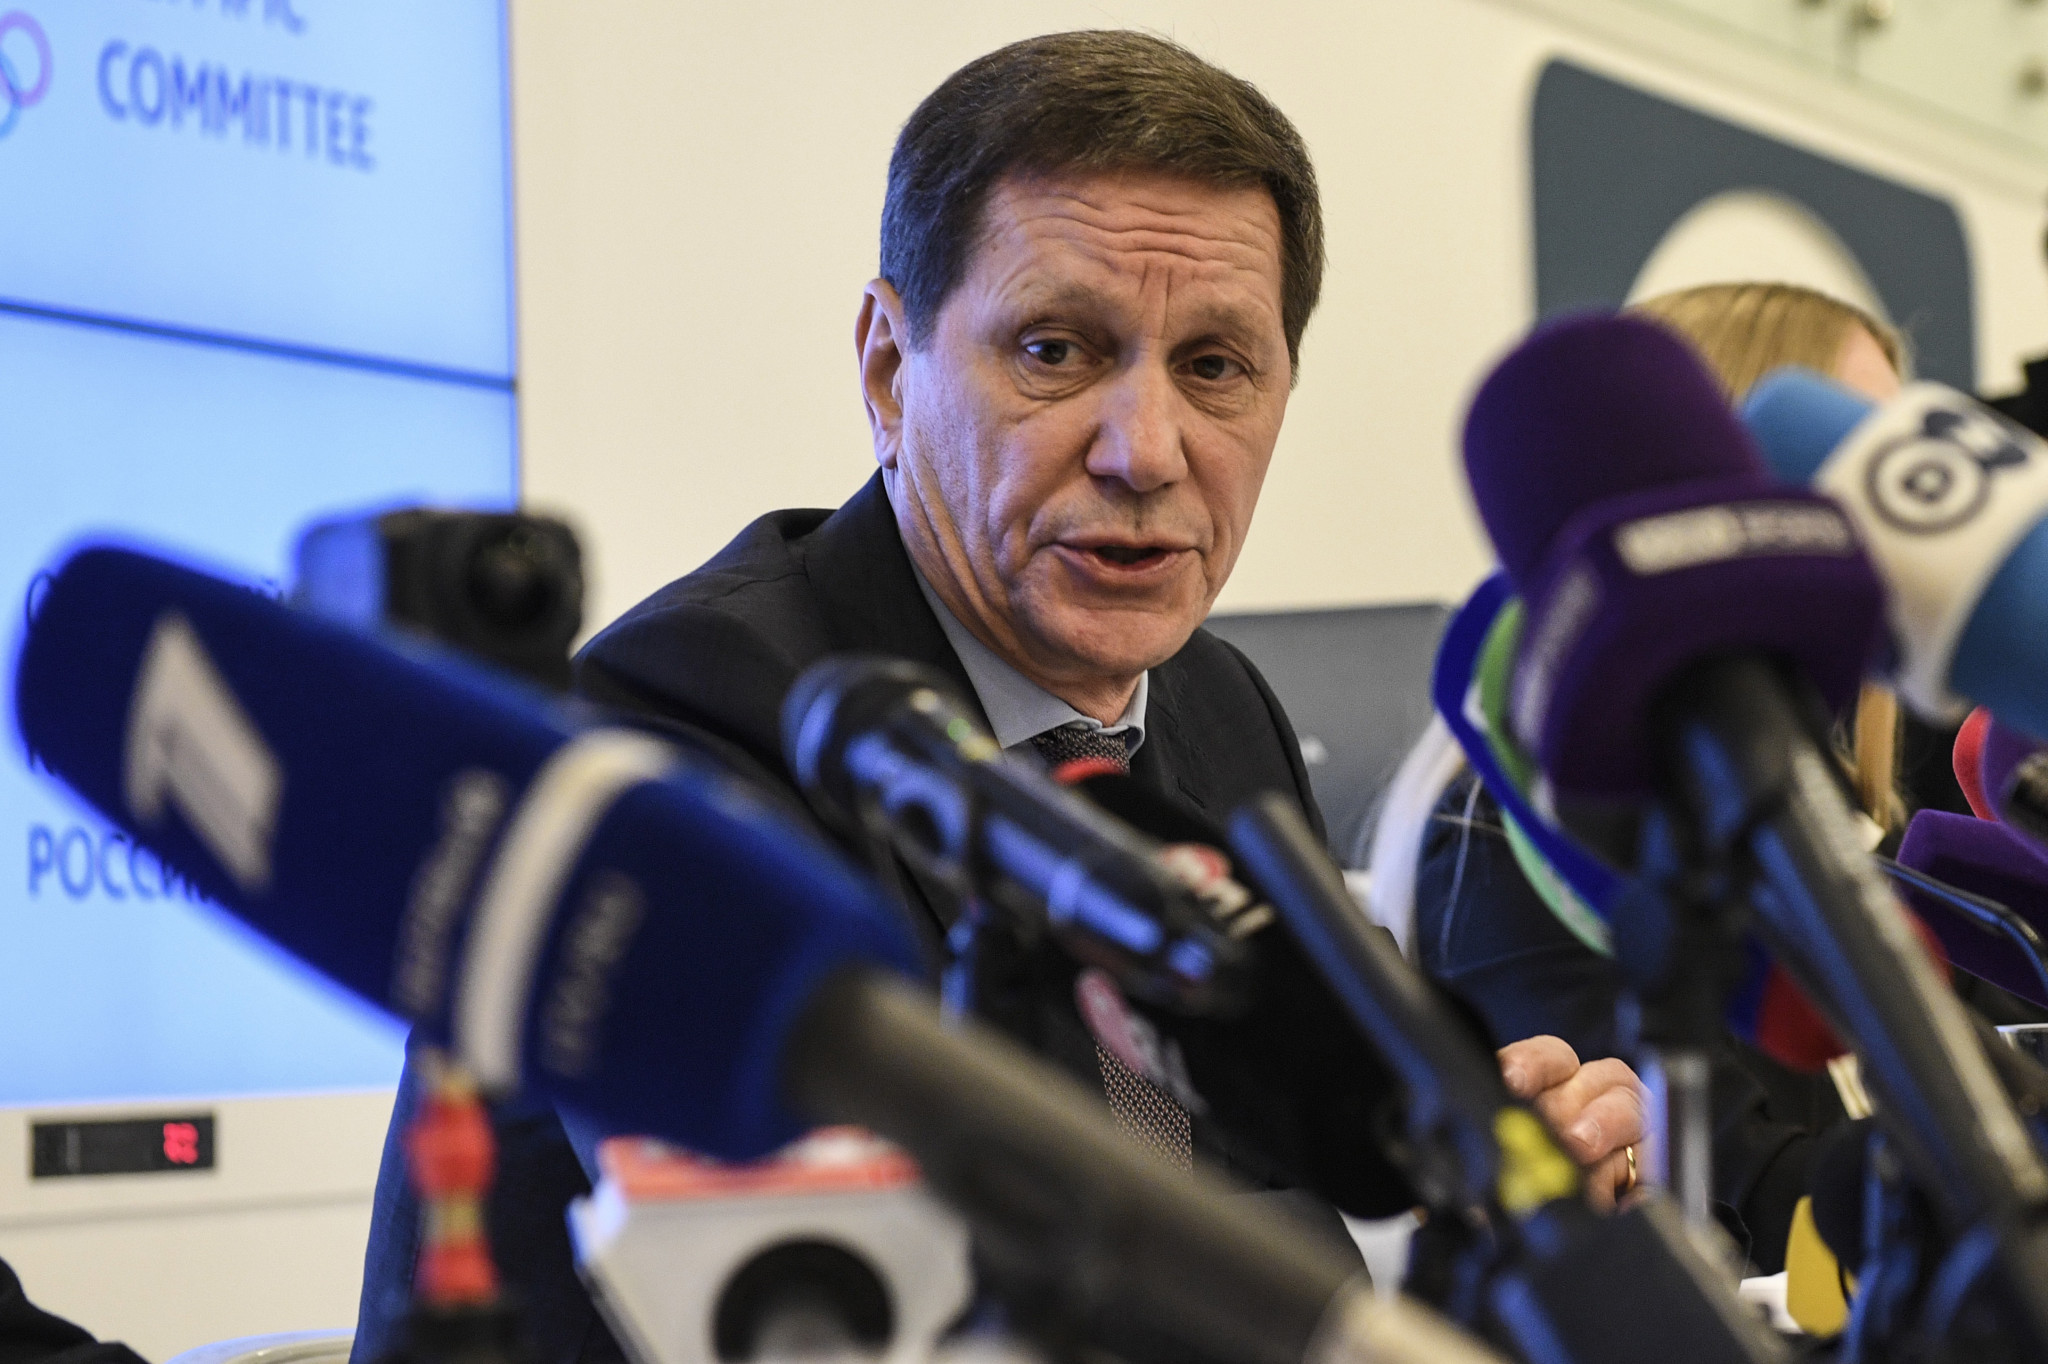 The iNADO have warned the Russian Olympic Committee under its President Alexander Zhukov should not be reinstated as quickly as the IOC hope, which could be as early as the Closing Ceremony of Pyeongchang 2018 ©Getty Images